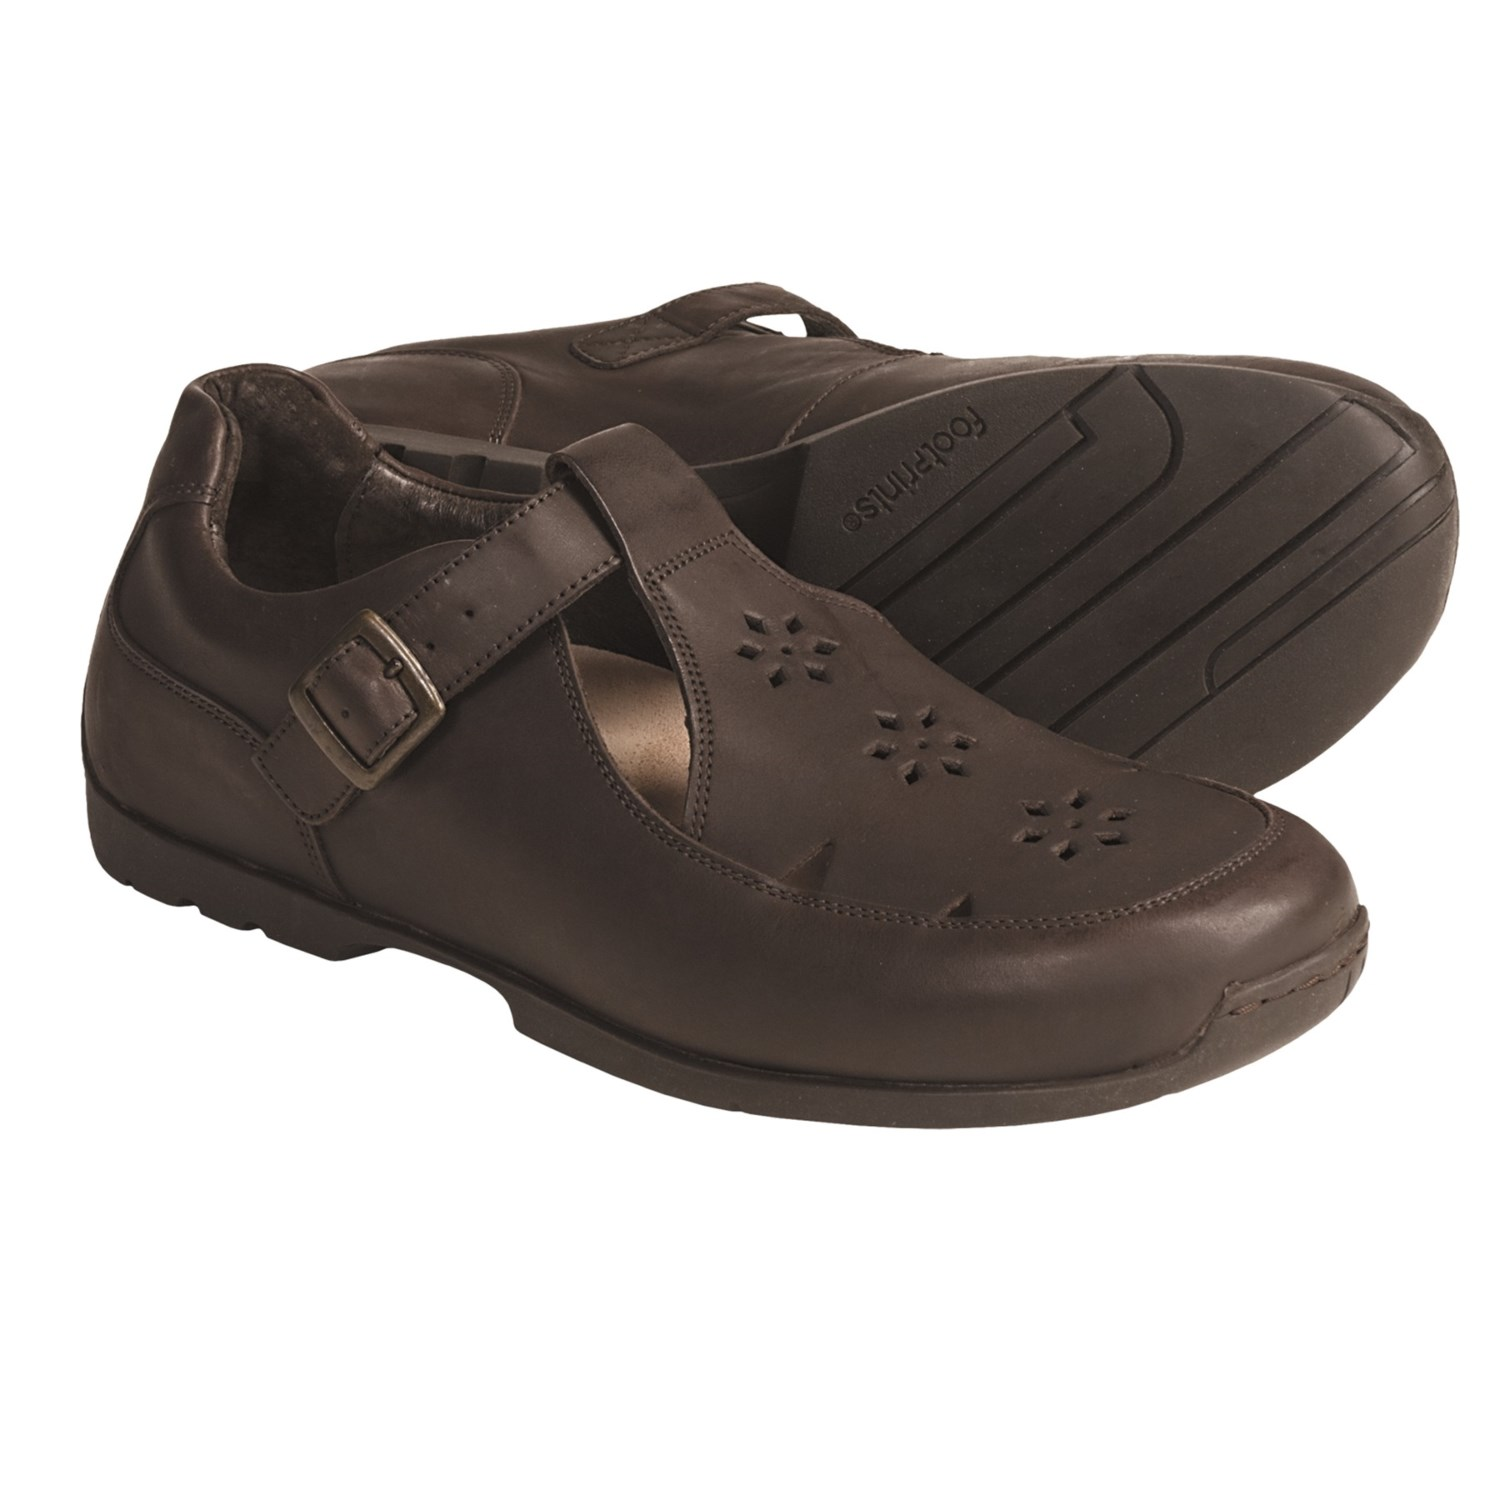 0c264a1531a Birkenstock footprints mens shoes / 4 week eating plan to lose weight